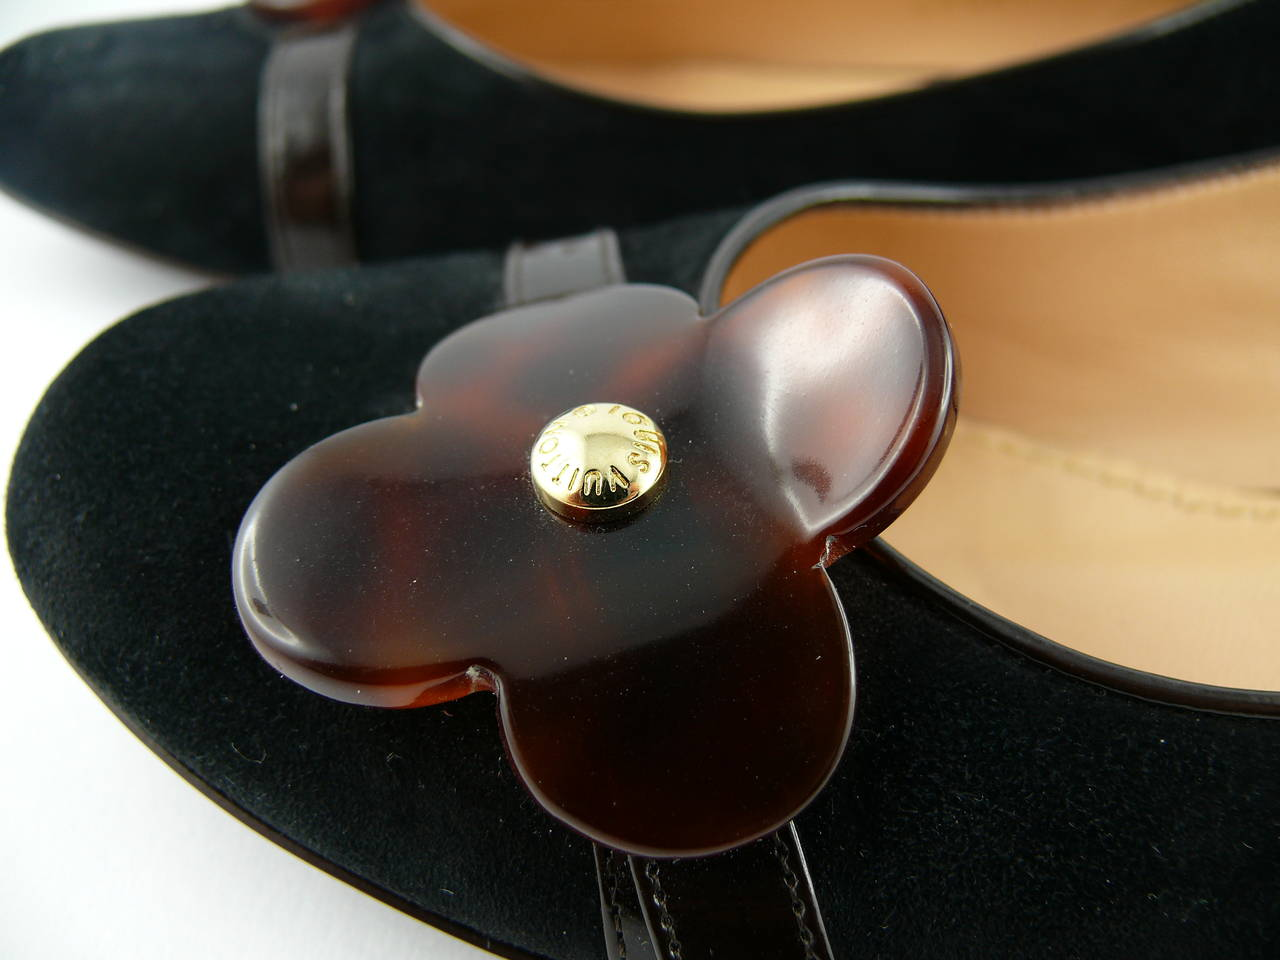 LOUIS VUITTON black suede ballet flat embellished with a large tortoise-like resin flower.  Estimated retail price : 500 US$.  Marked LOUIS VUITTON Paris. Reference BR 0054. Sole stamp : LV 34 1/2 Made in Italy.  Marked size (italian): 34